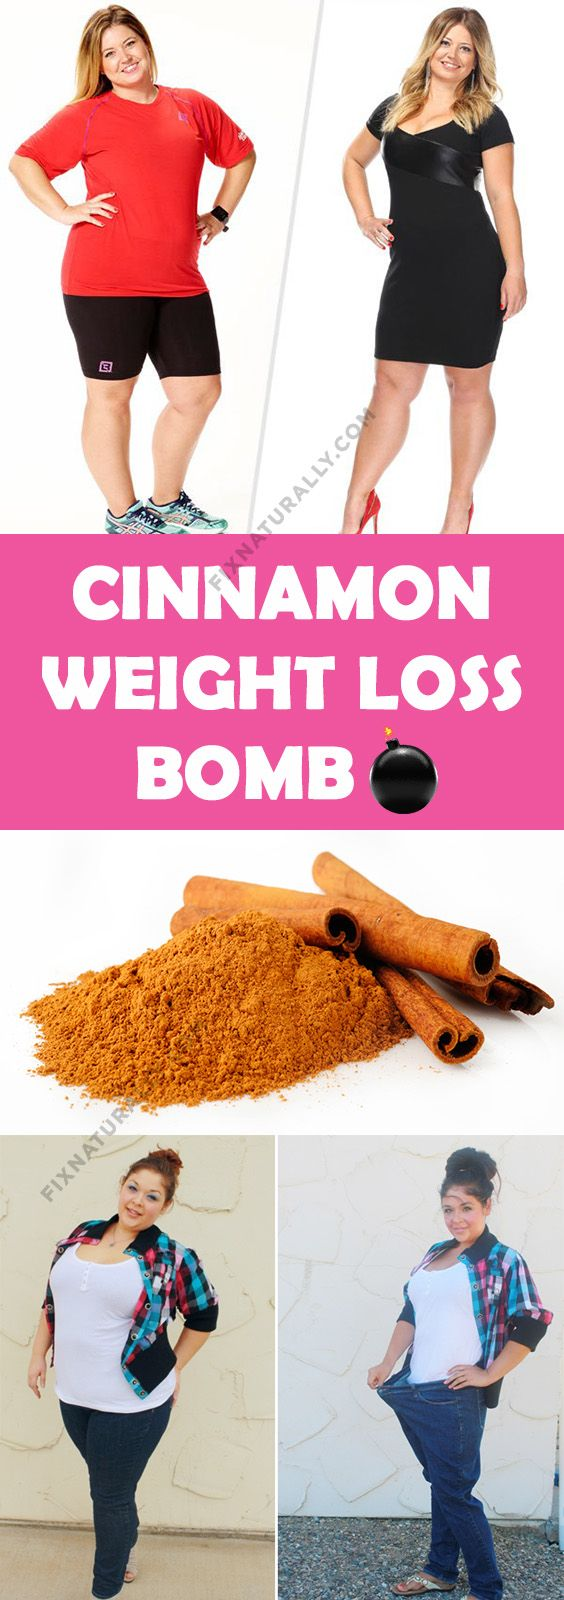 How To Use Cinnamon For Weight Loss  Best Ways To Use Cinnamon For Weight Loss #WieghtLoss #Cinnamon